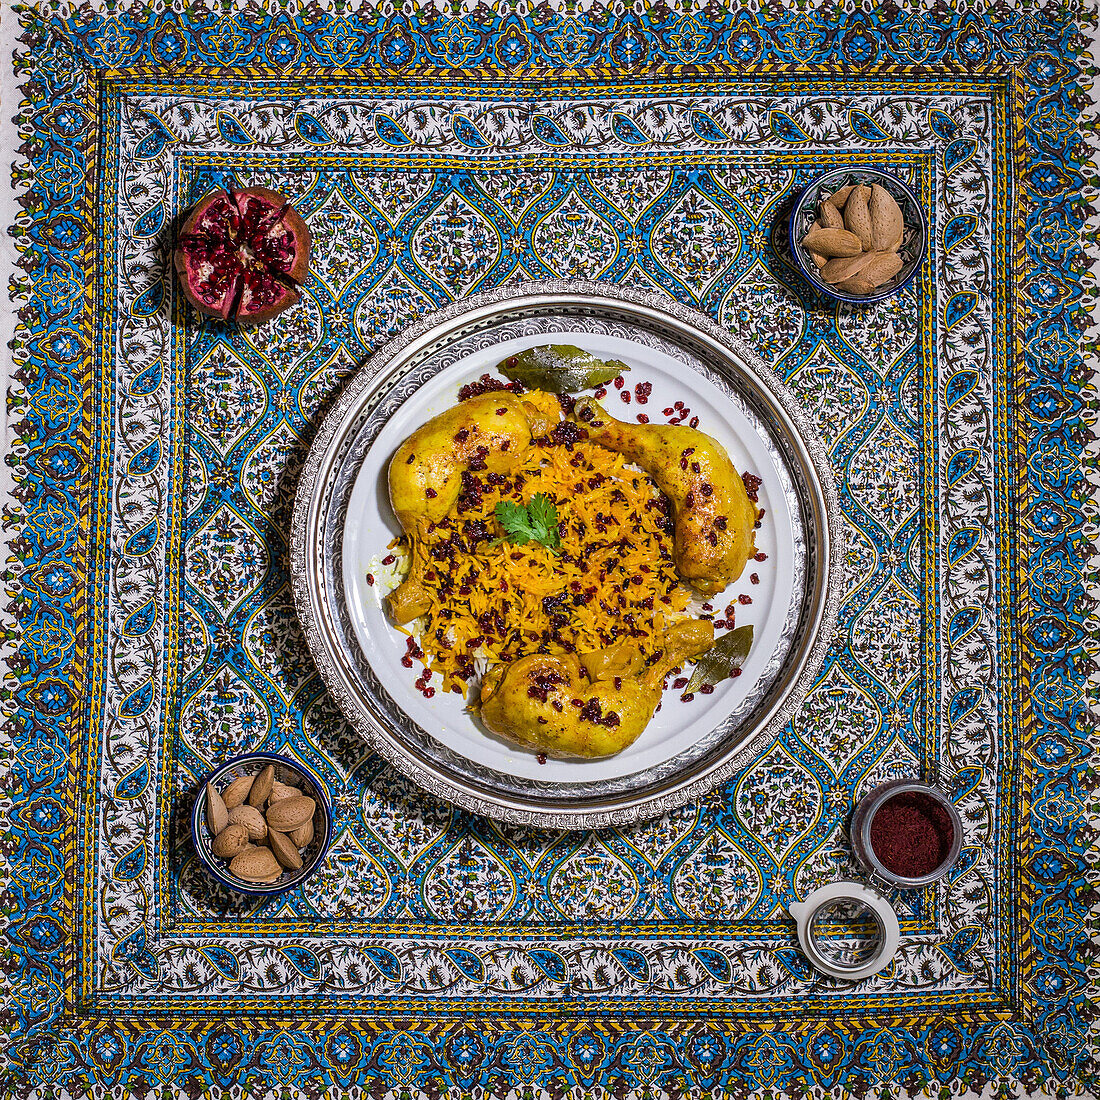 Chicken with safran rice and barbarry, iranian shirin polo, Iran